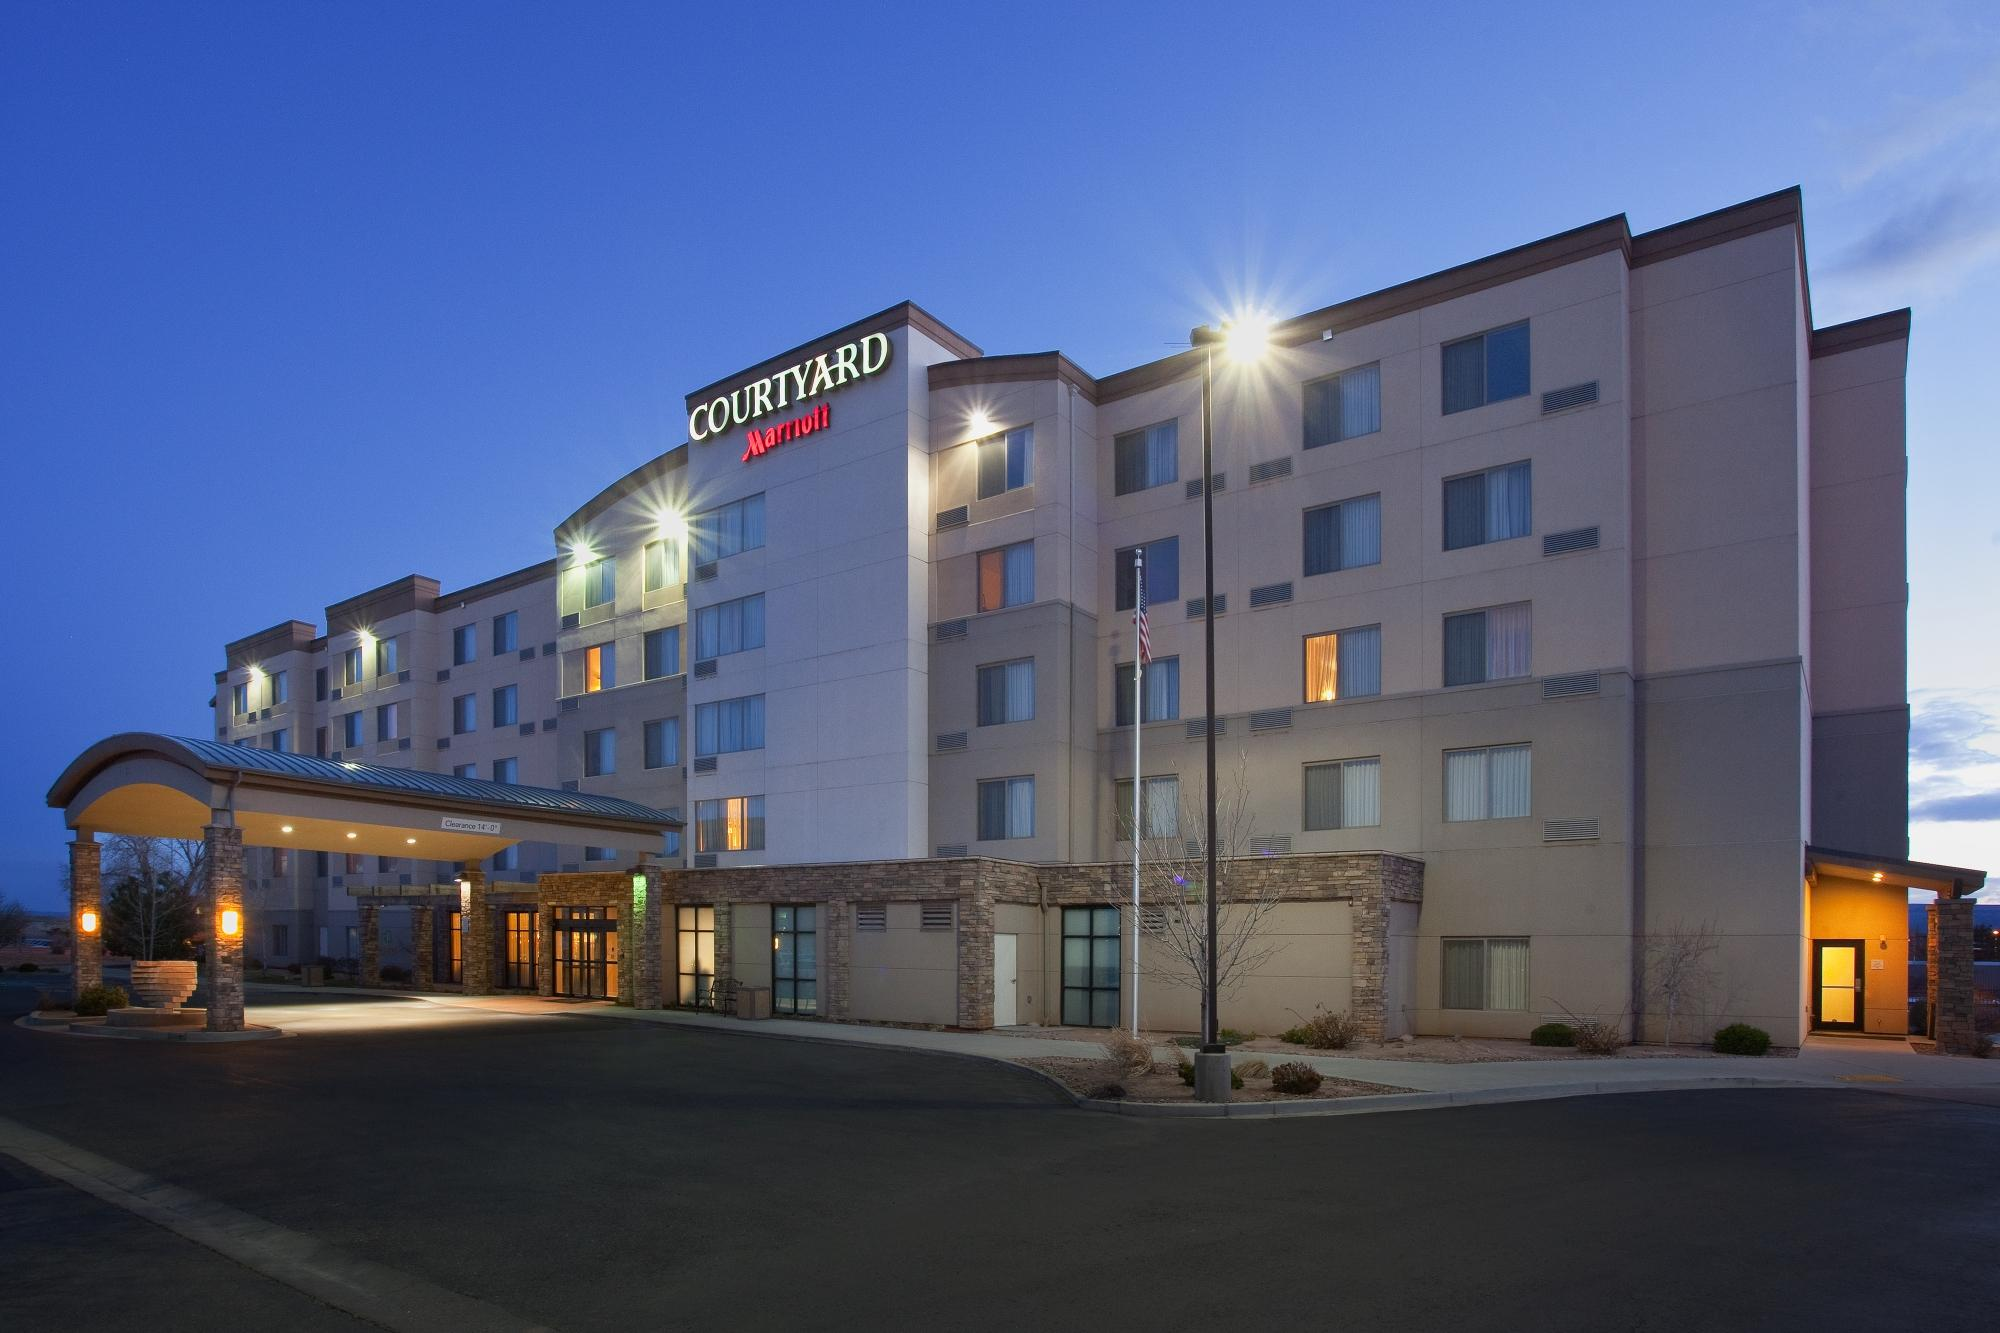 Courtyard by Marriott Grand Junction